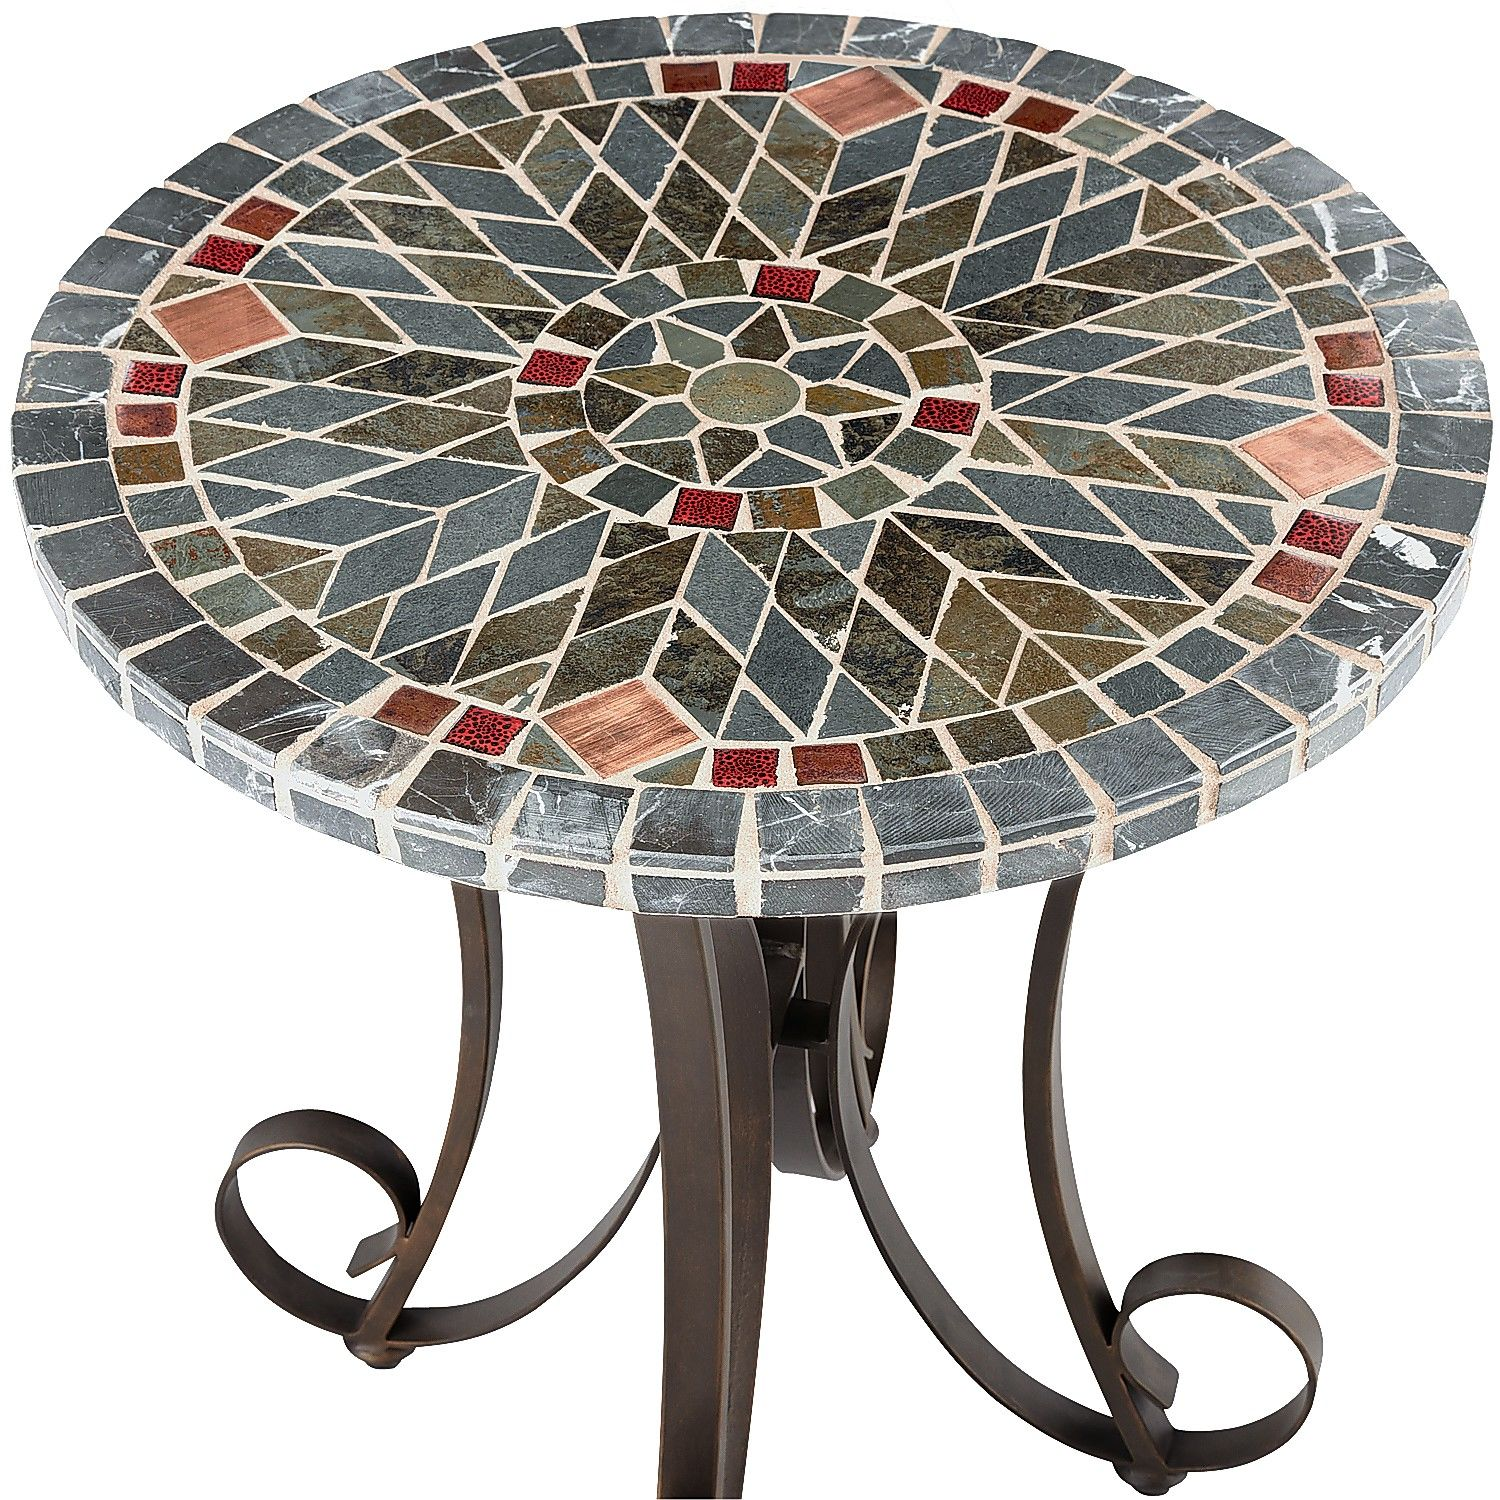 verazze mosaic accent table pier imports chrome kohls sunflower modern nest coffee tables night stand vienna furniture union jack small nightstand low round trestle dining room